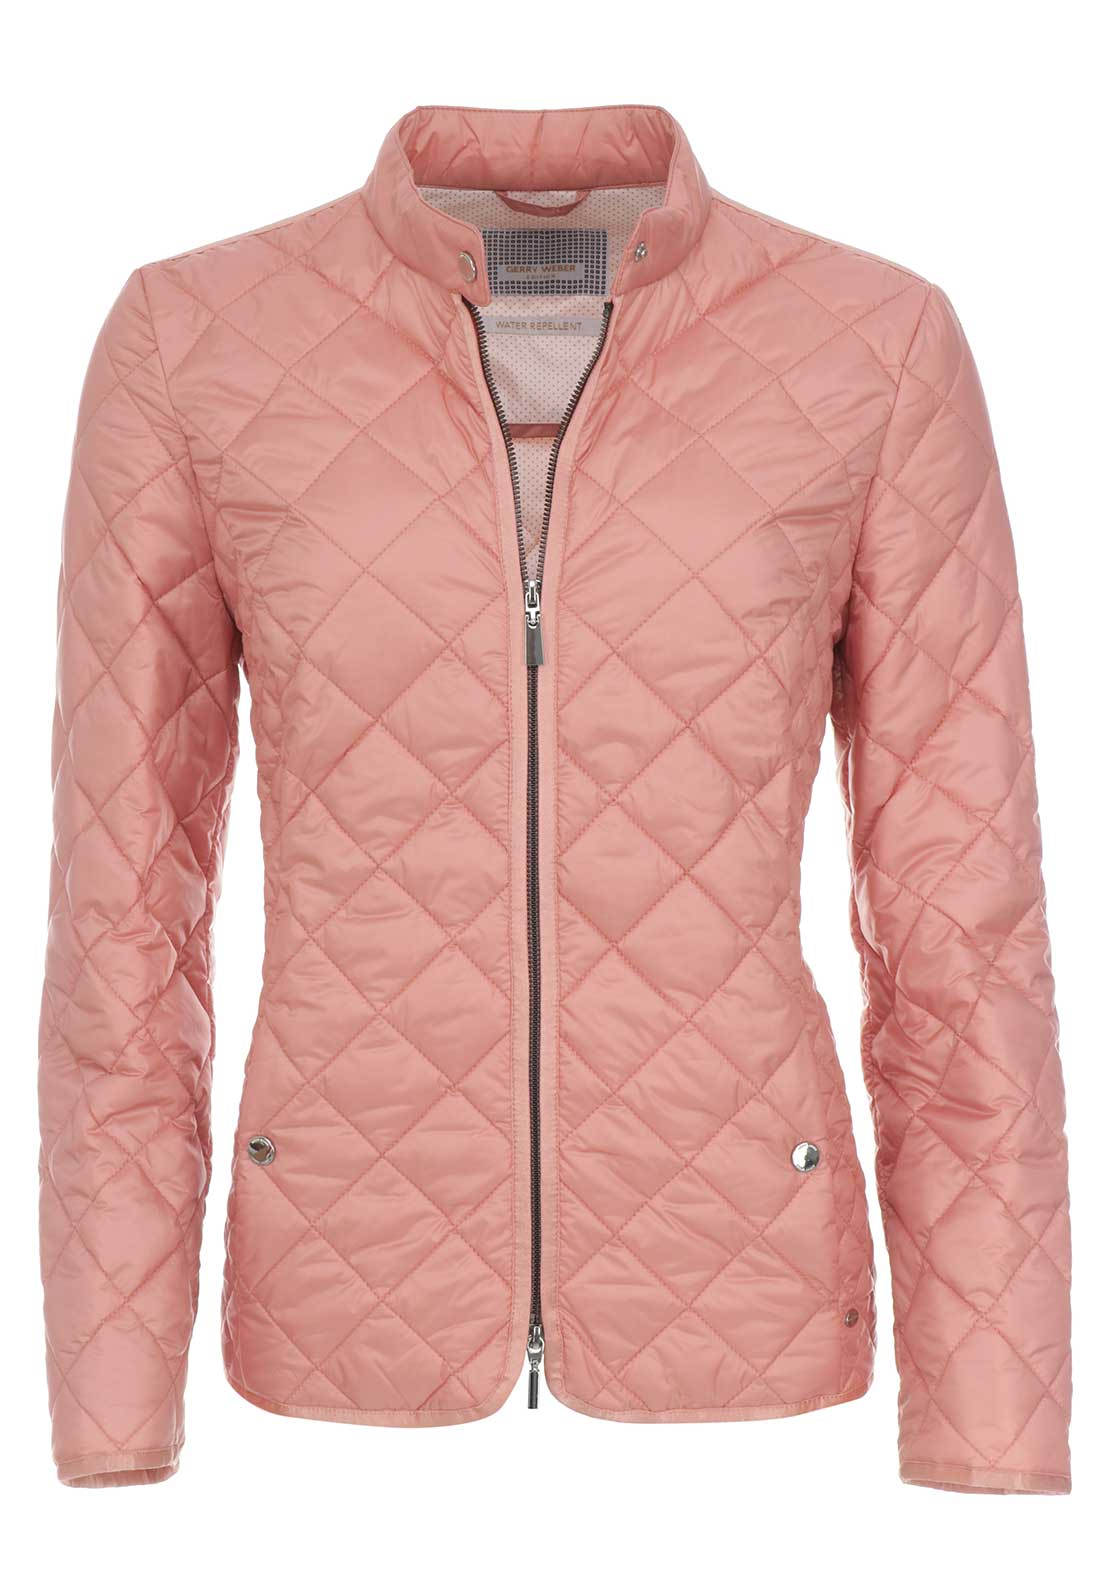 Gerry Weber Water Repellent Quilted Jacket, Peach